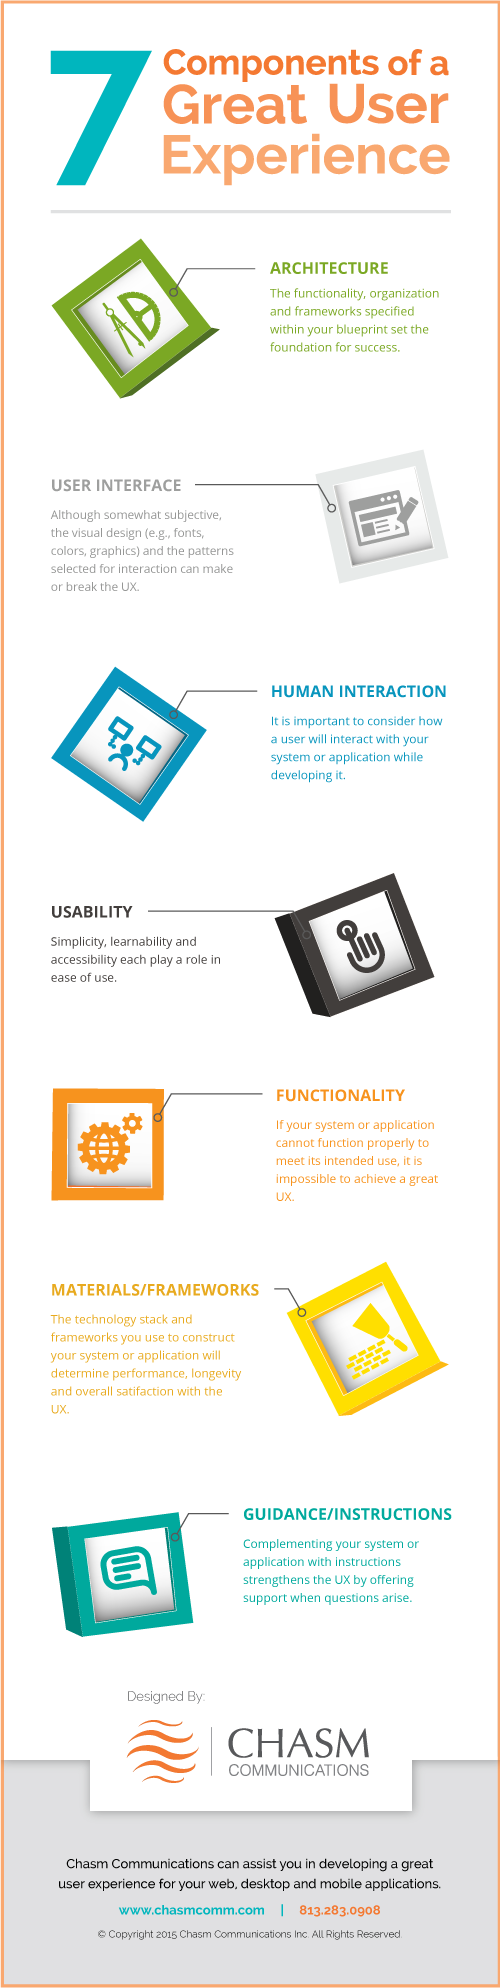 7 Components of a Great UX